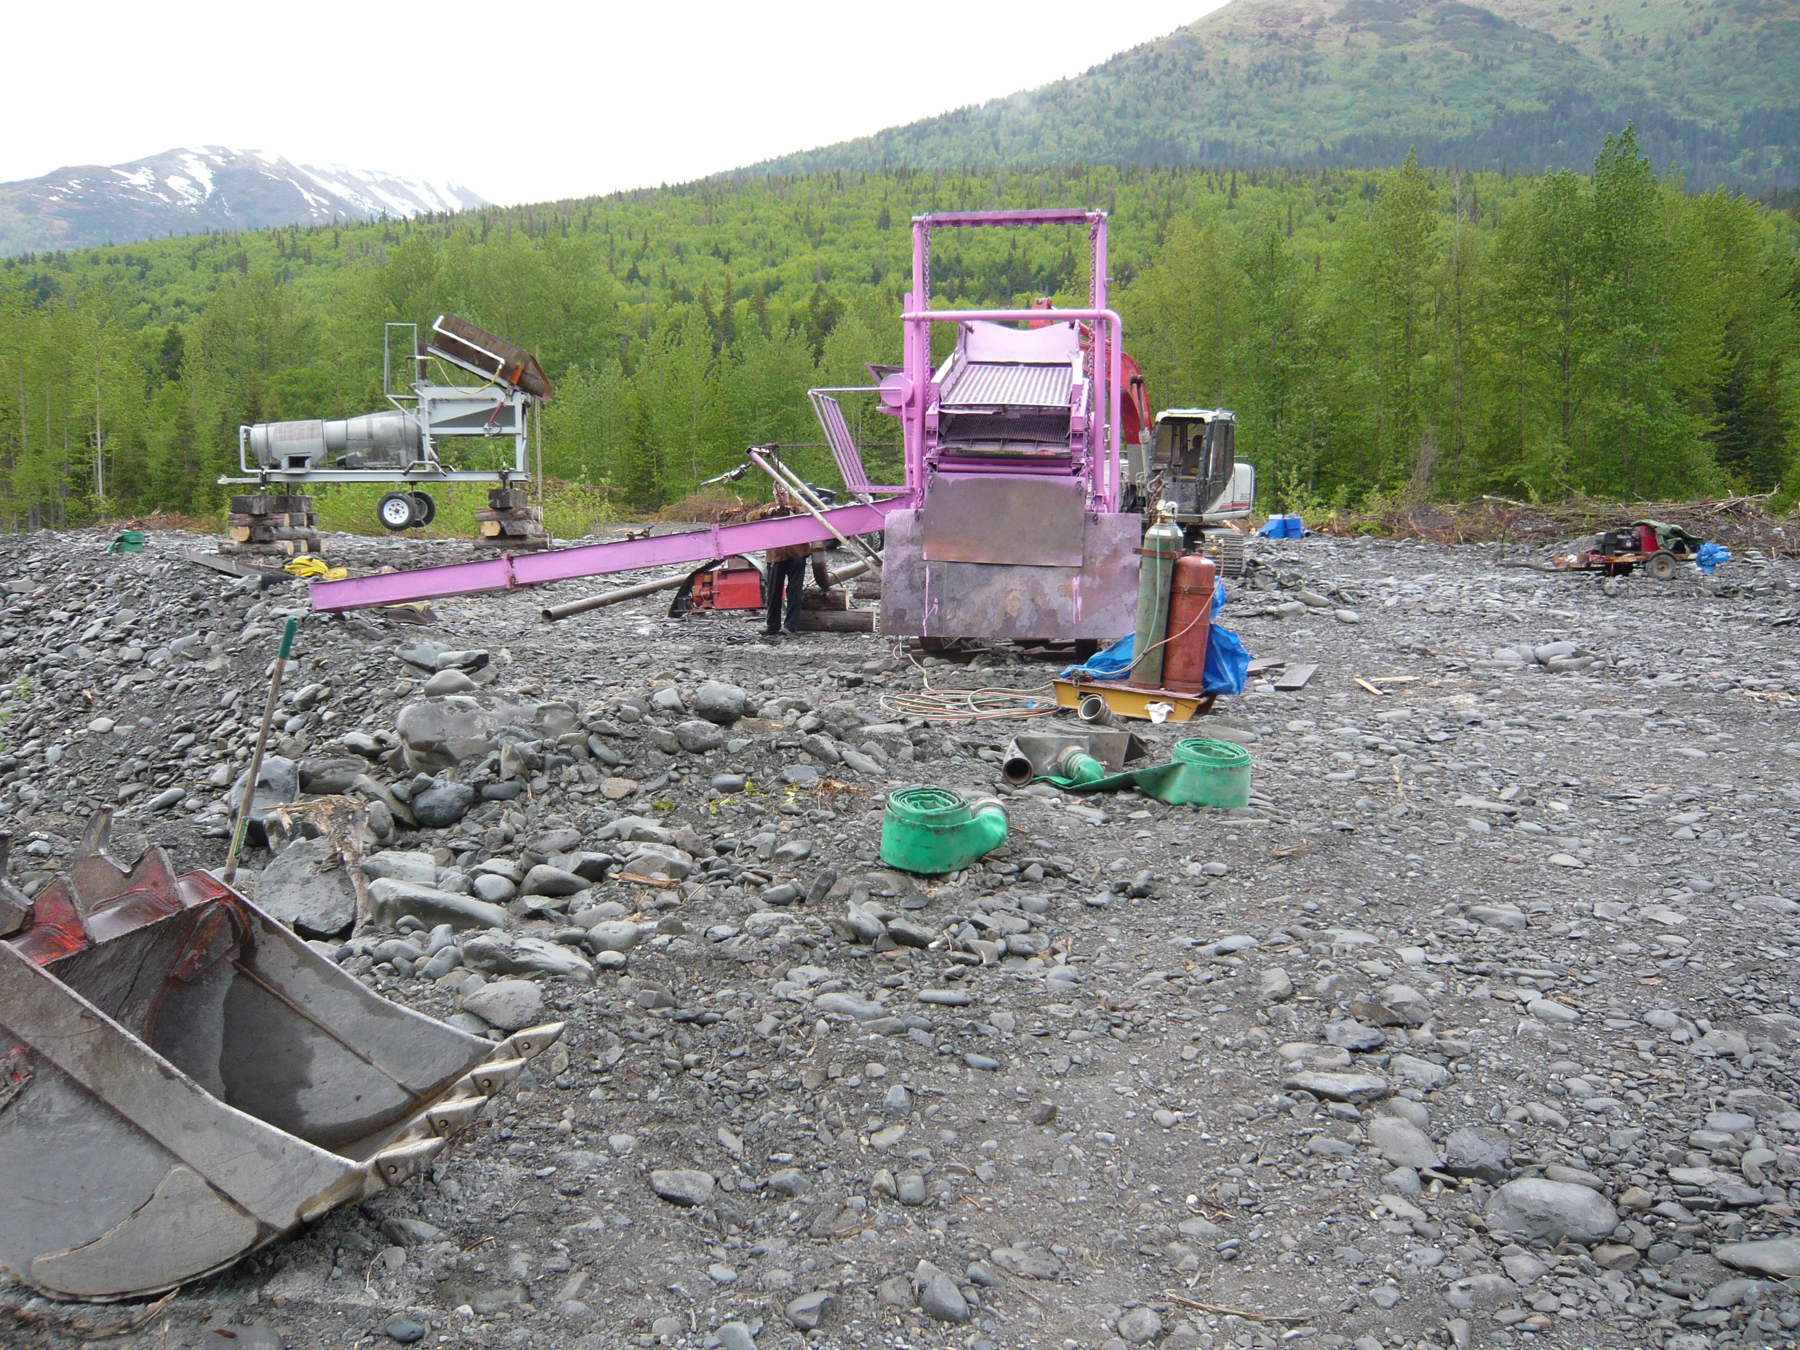 080614 The Pink Rig